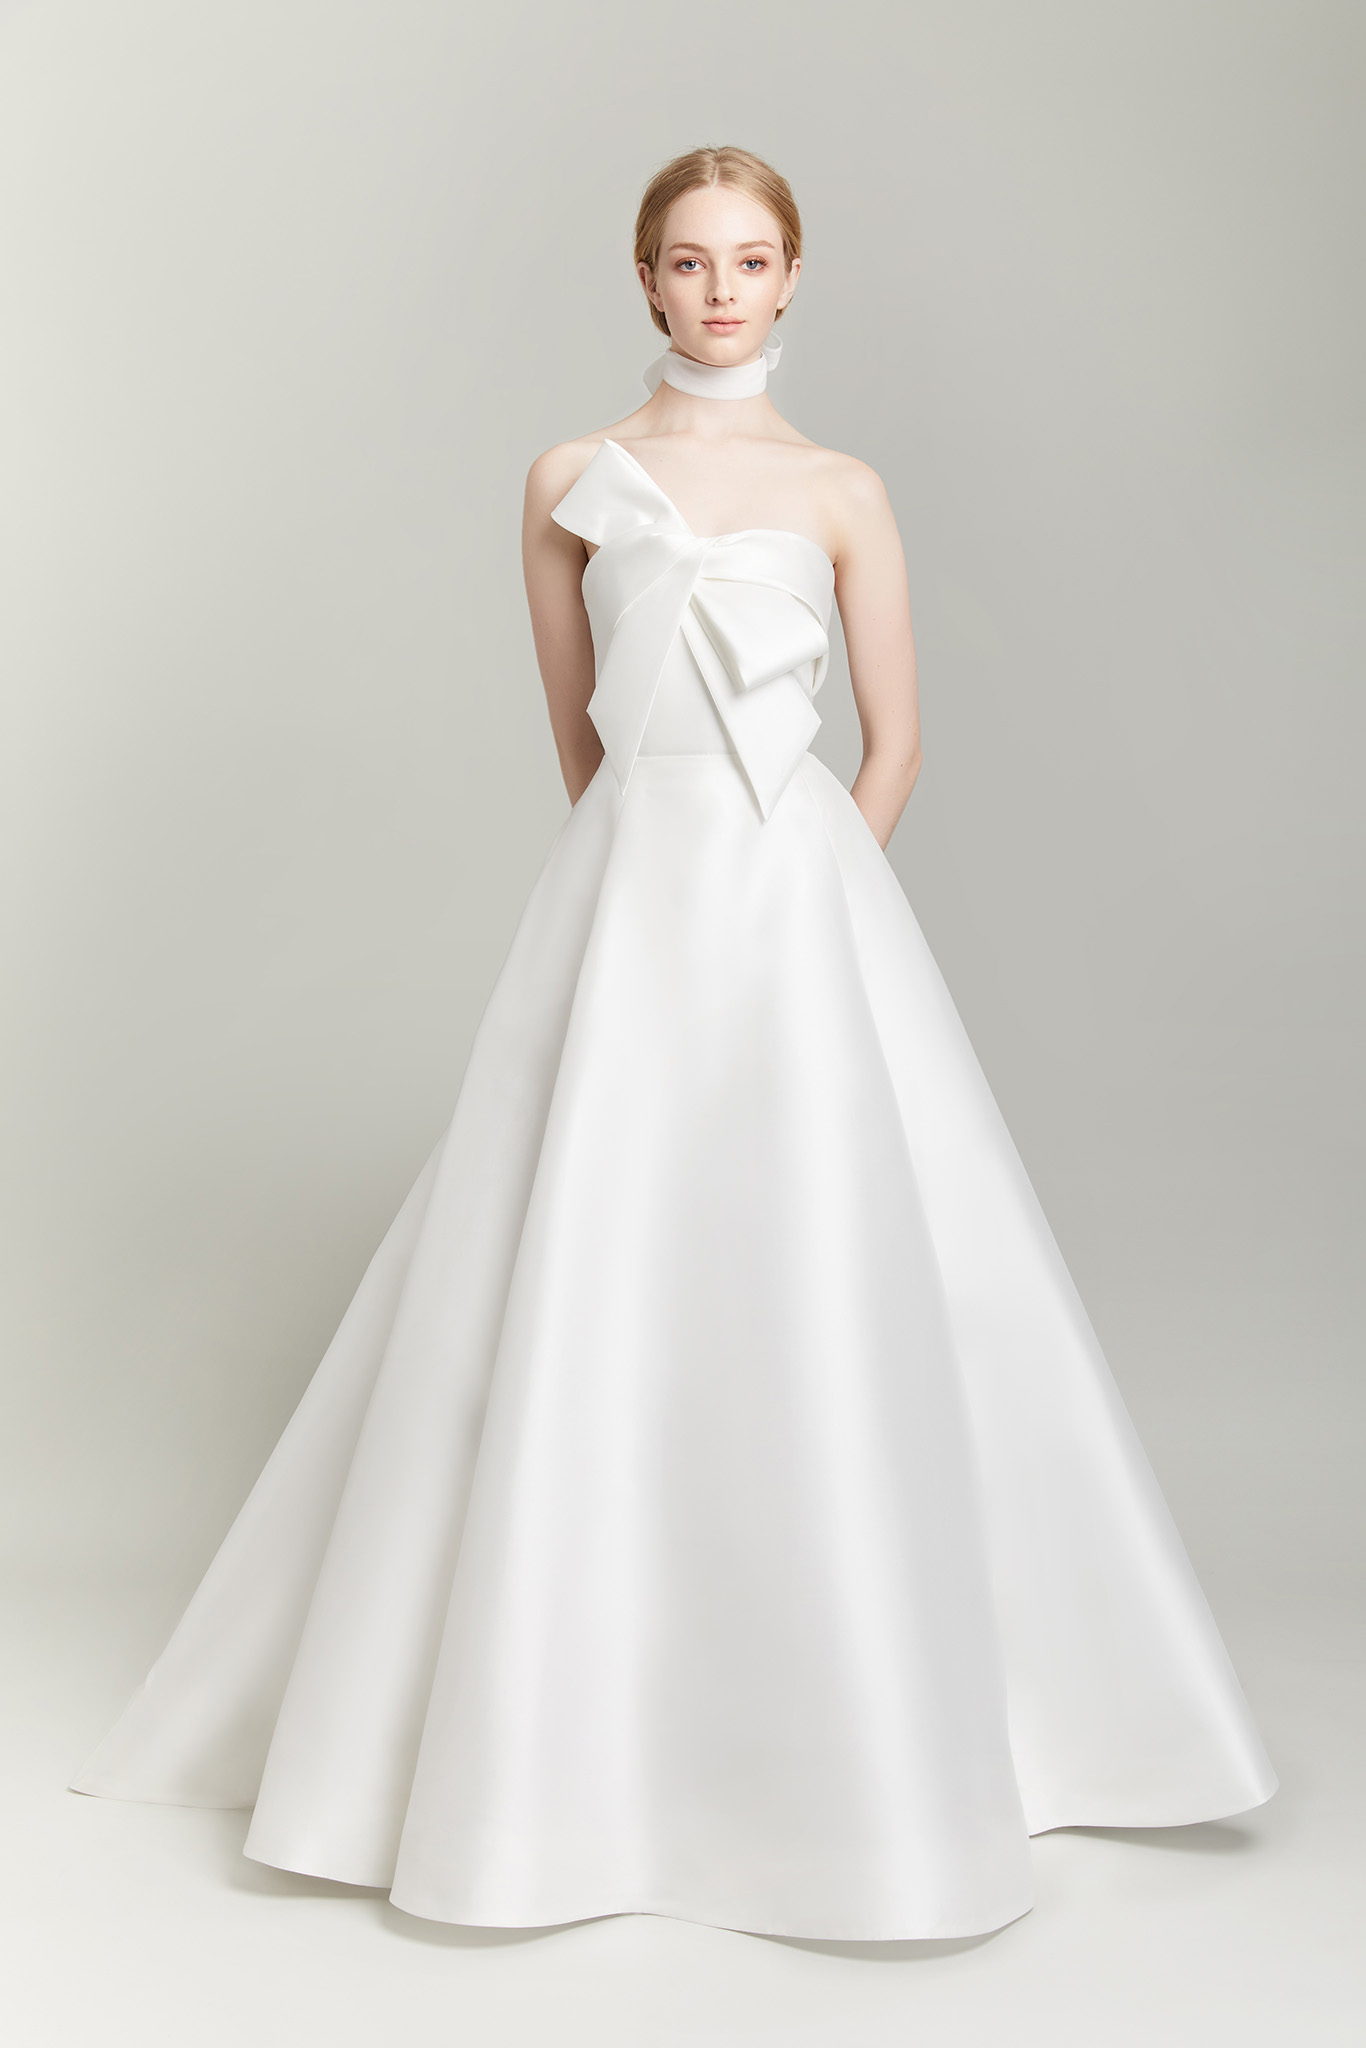 Lela Rose A-Line gown with bow bodice